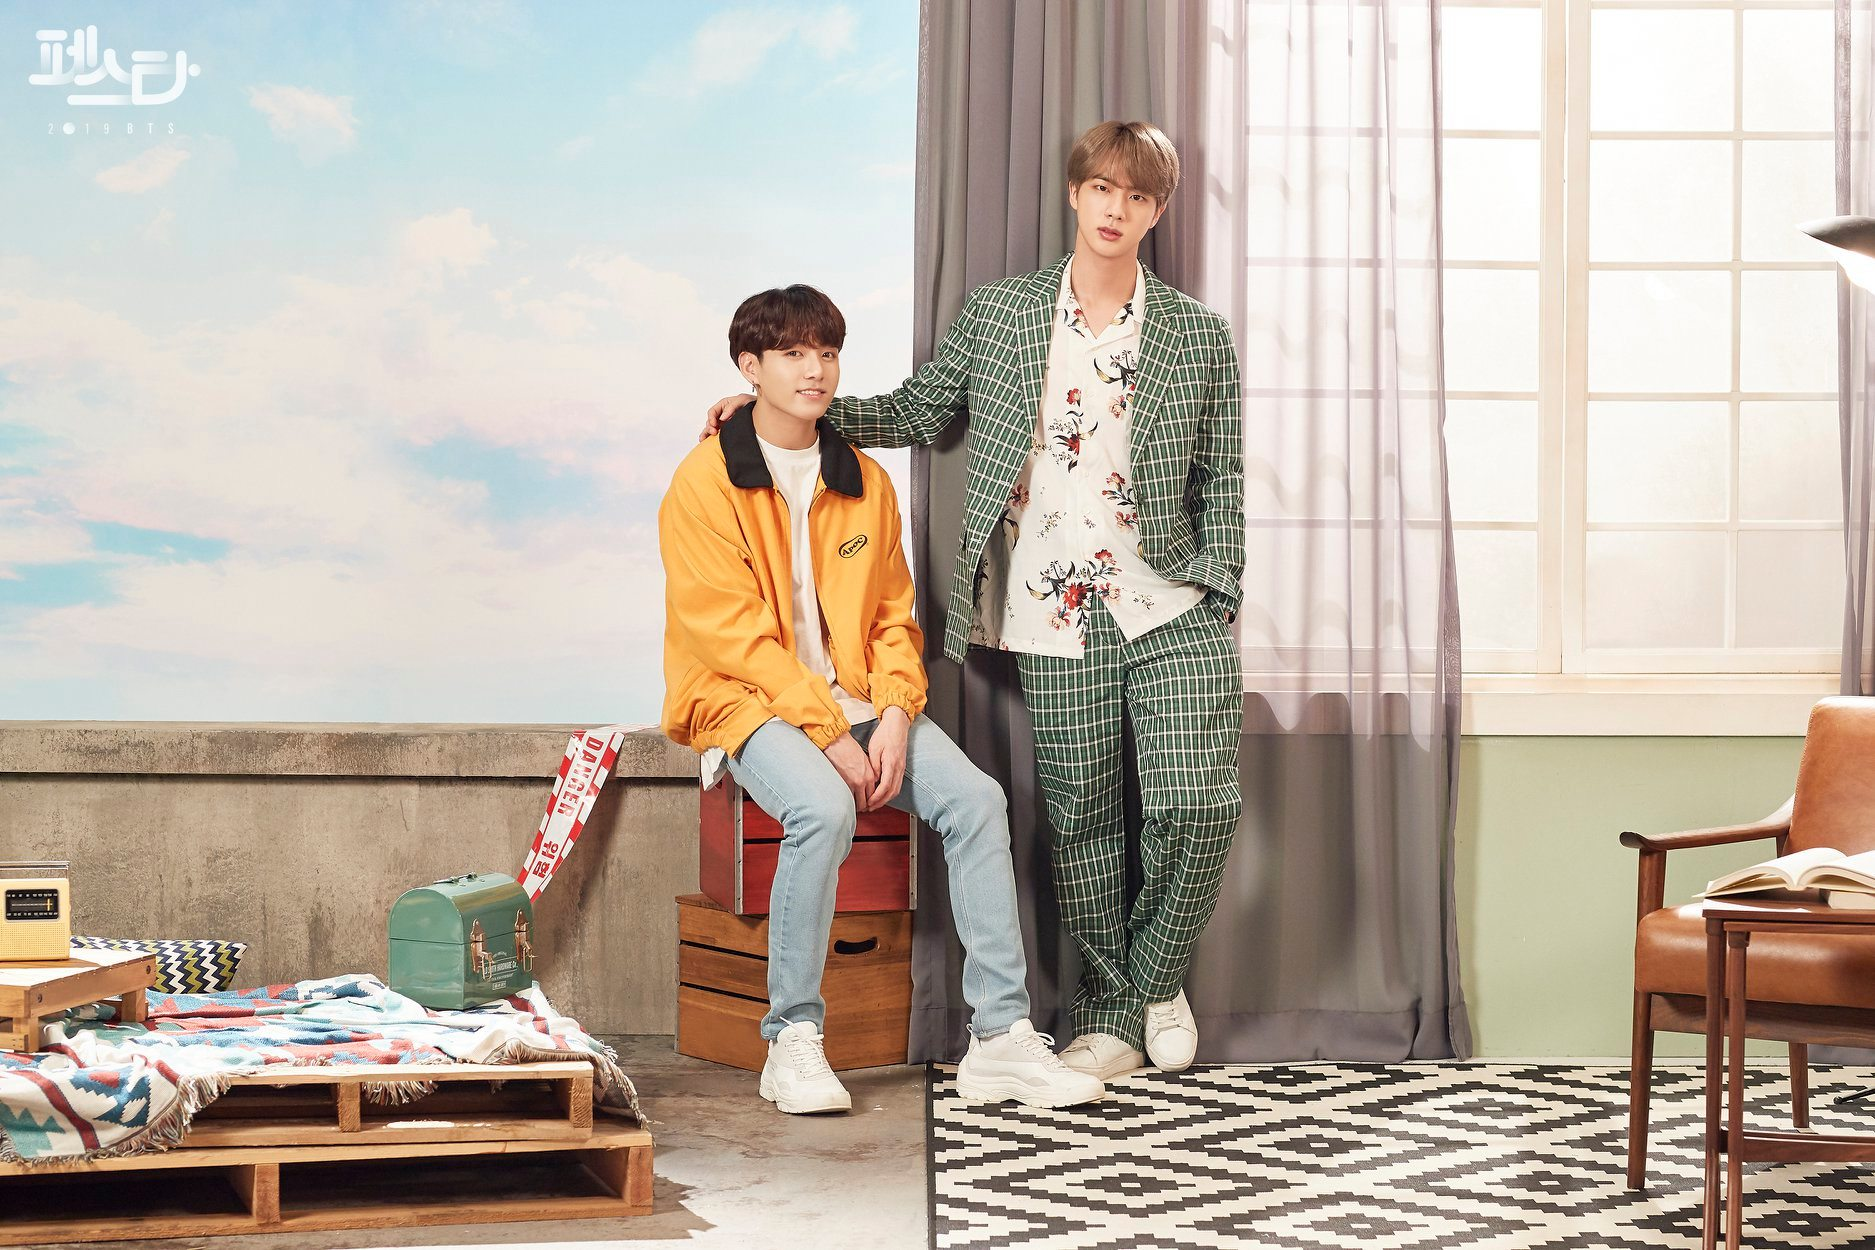 bts gets creative in gorgeous family portraits for 2019